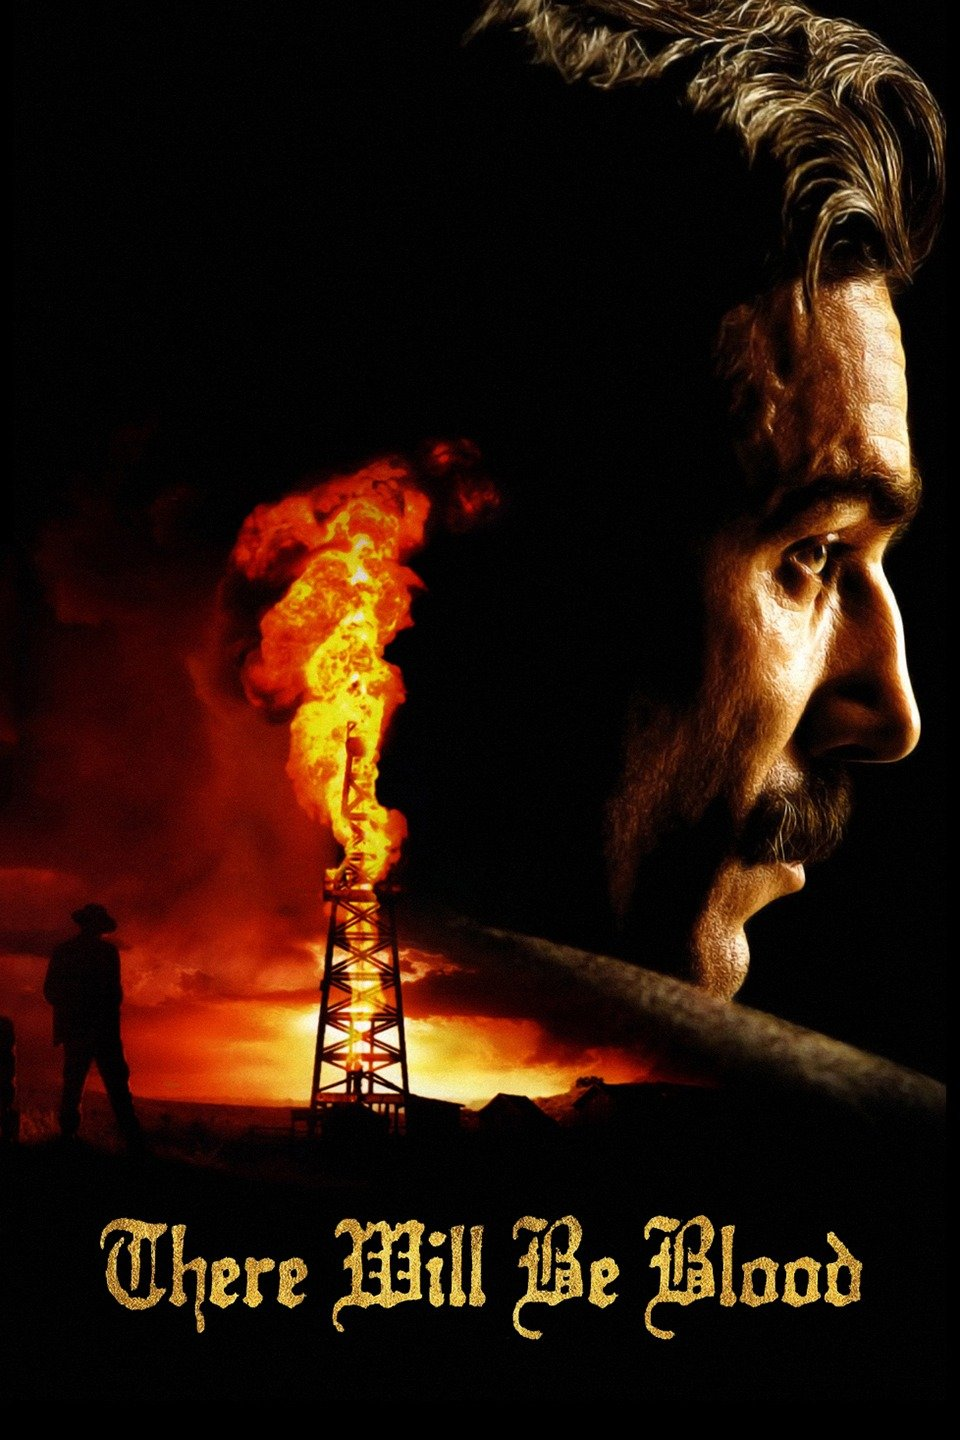 There Will Be Blood (2007) - Directed by: Paul Thomas AndersonStarring: Daniel Day-Lewis, Paul DanoRated: R for Some ViolenceRunning Time: 2 h 37 mTMM Score: 5 StarsSTRENGTHS: Characters, Story, Cinematography, ScoreWEAKNESSES: Requires Patience